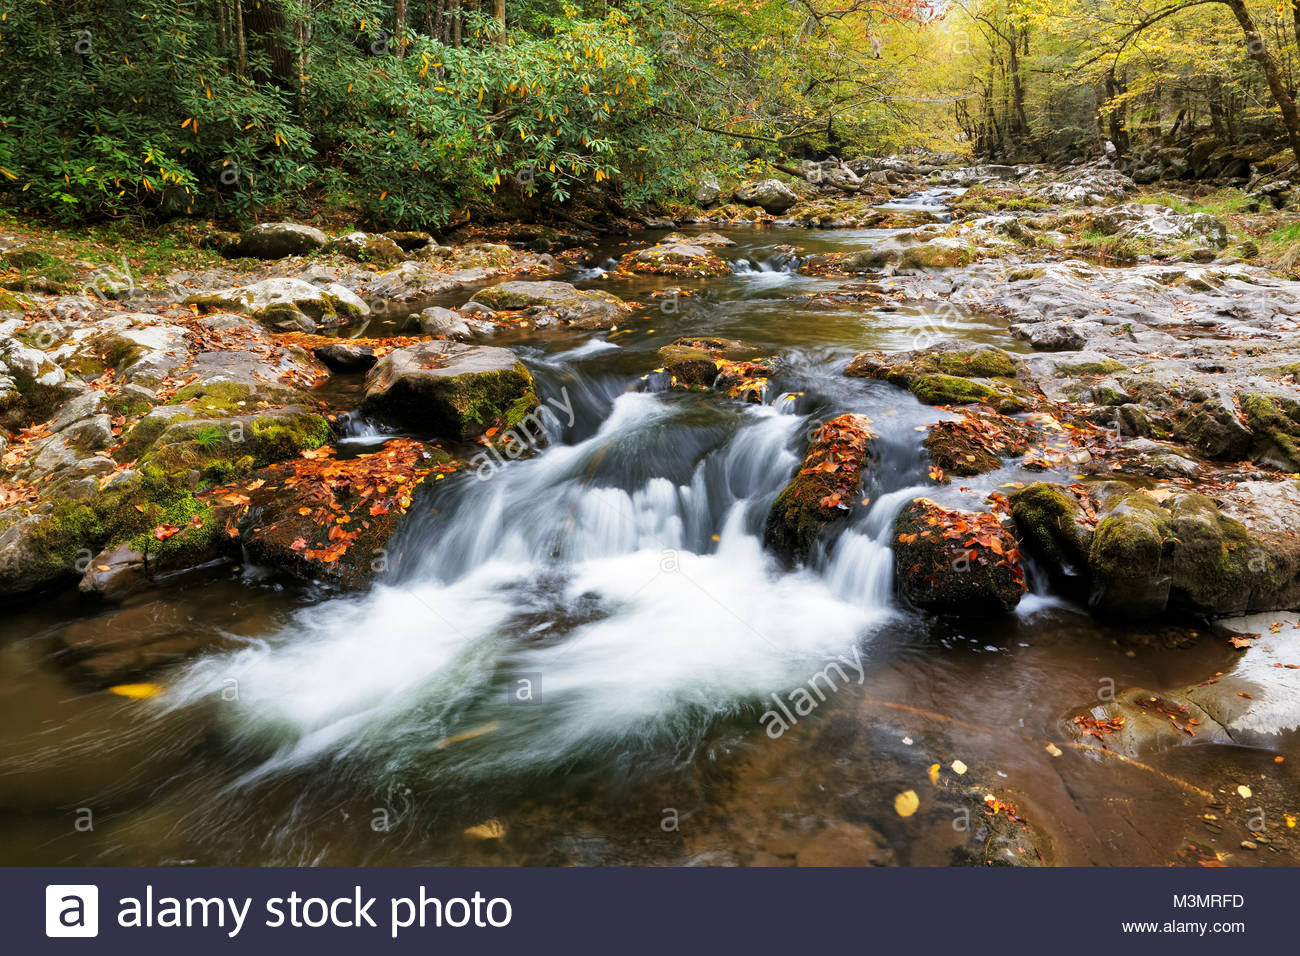 Little River in Tremont, Great Smoky Mountains National Park - Stock Image